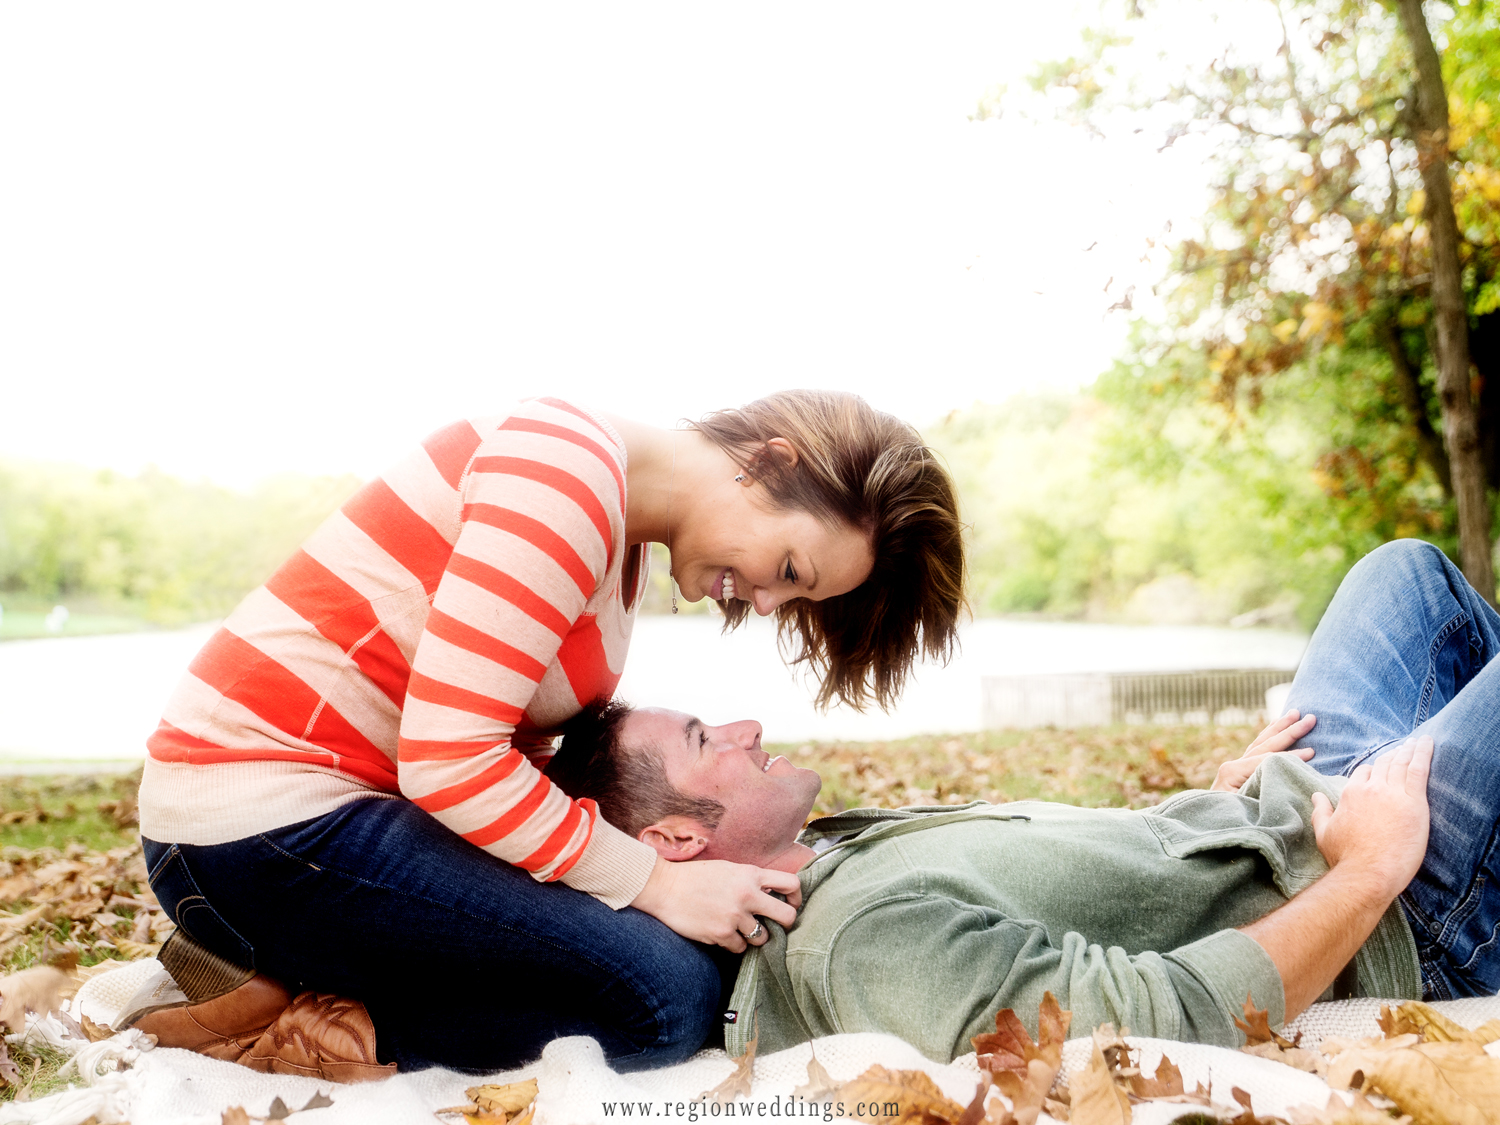 A romantic engagement photo of a couple laying on a blanket at Lemon Lake Park with Fall leaves all around them.